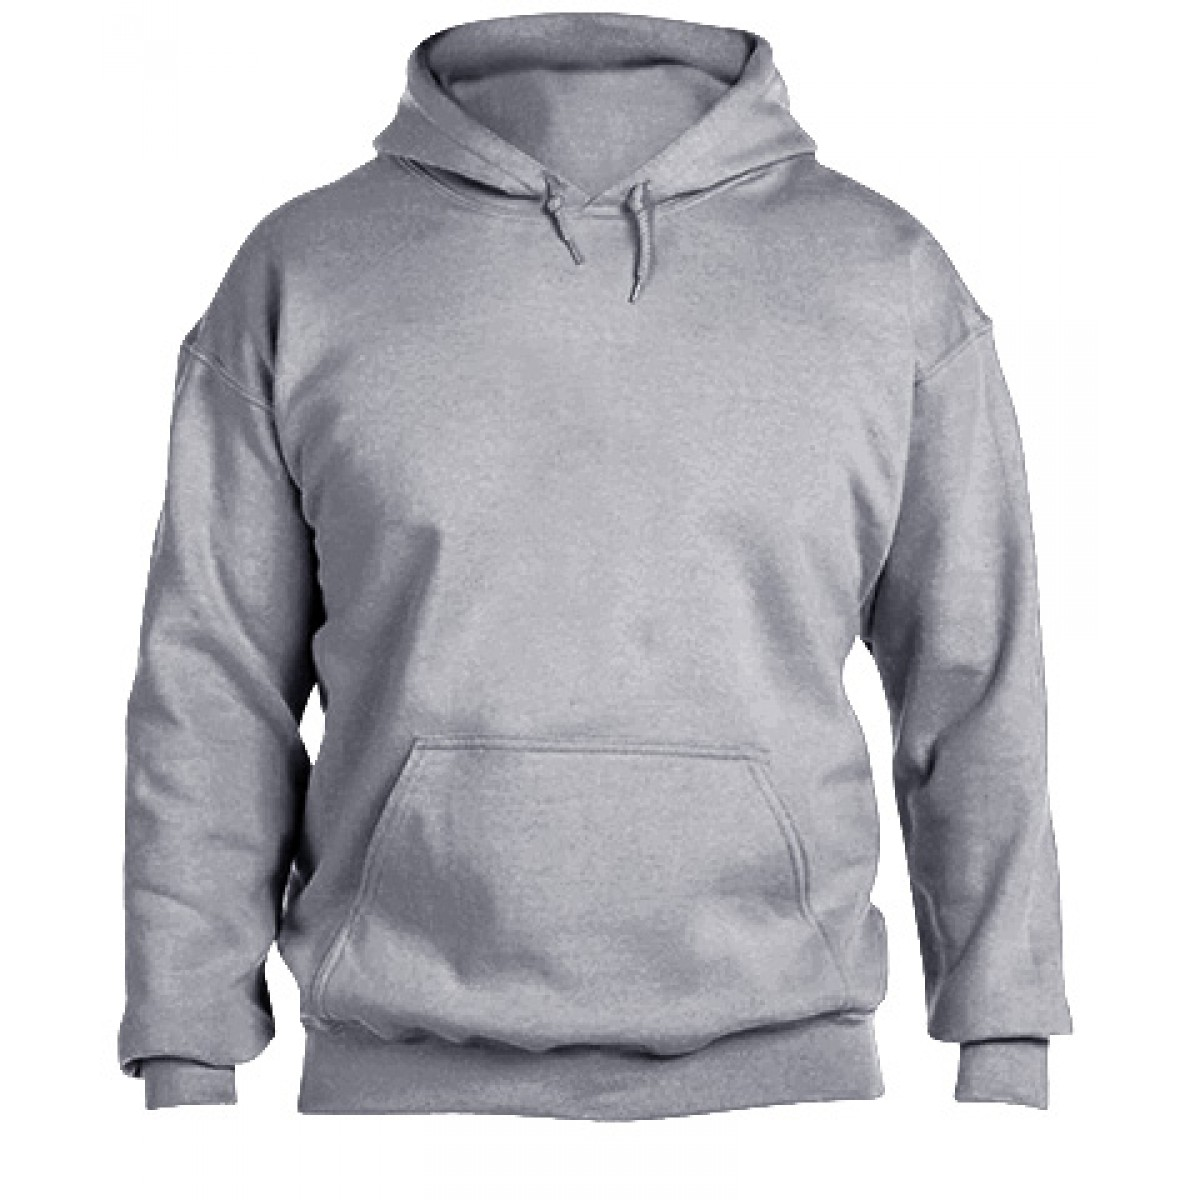 Hooded Sweatshirt 50/50 Heavy Blend-Sports Grey-L